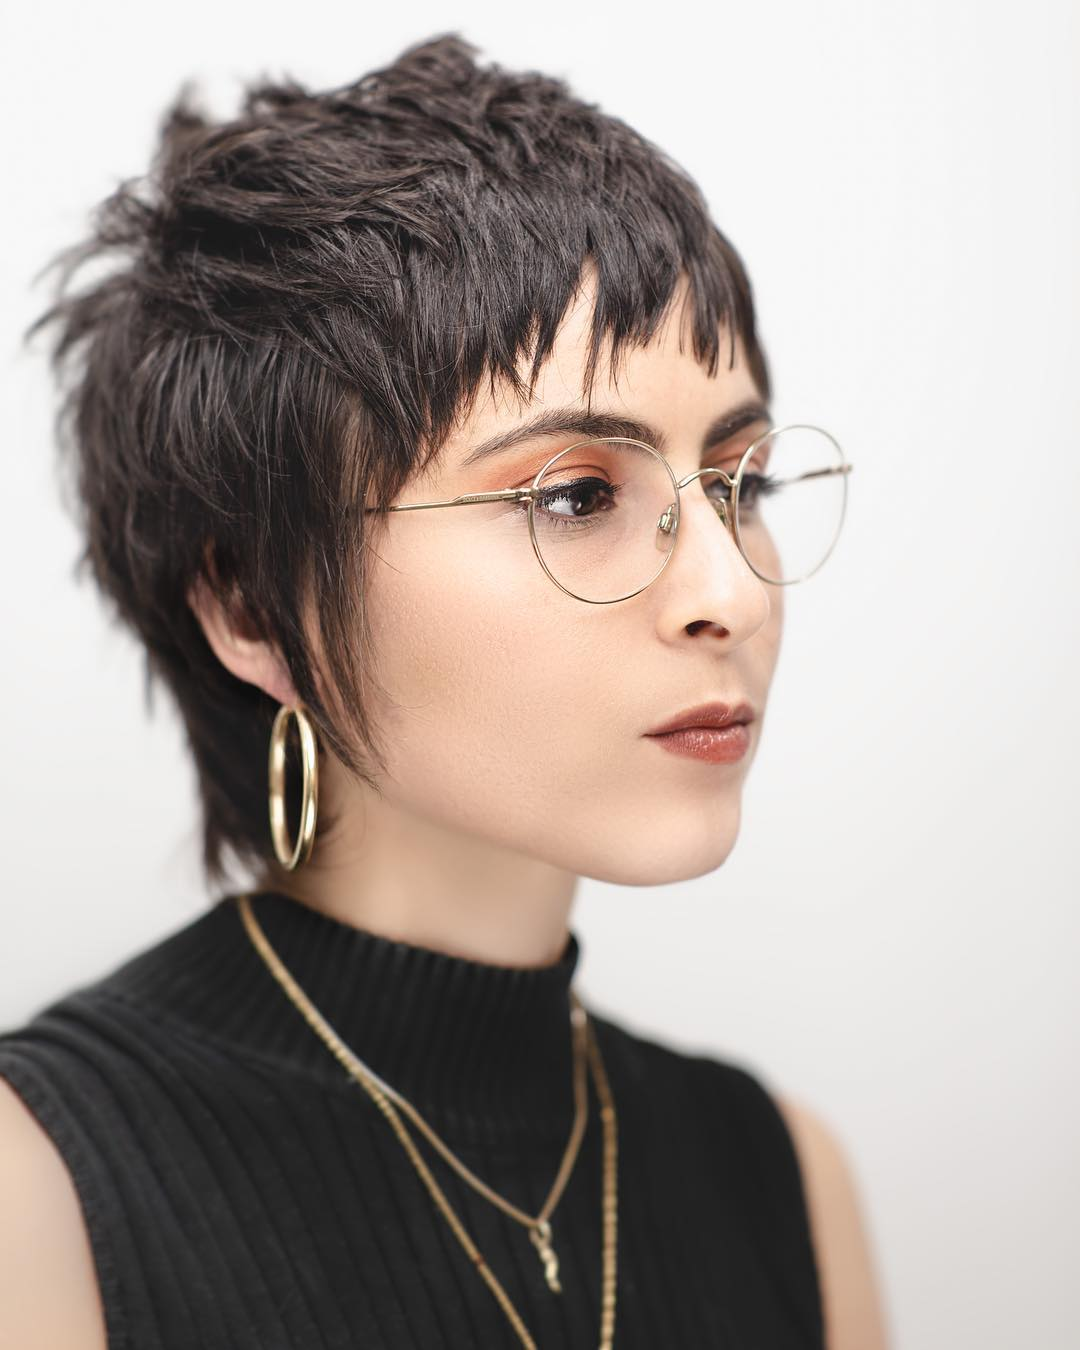 Brunette Cropped Razor Cut Mullet with Messy Texture and Choppy Fringe with Sideburns Short Fall Hairstyle